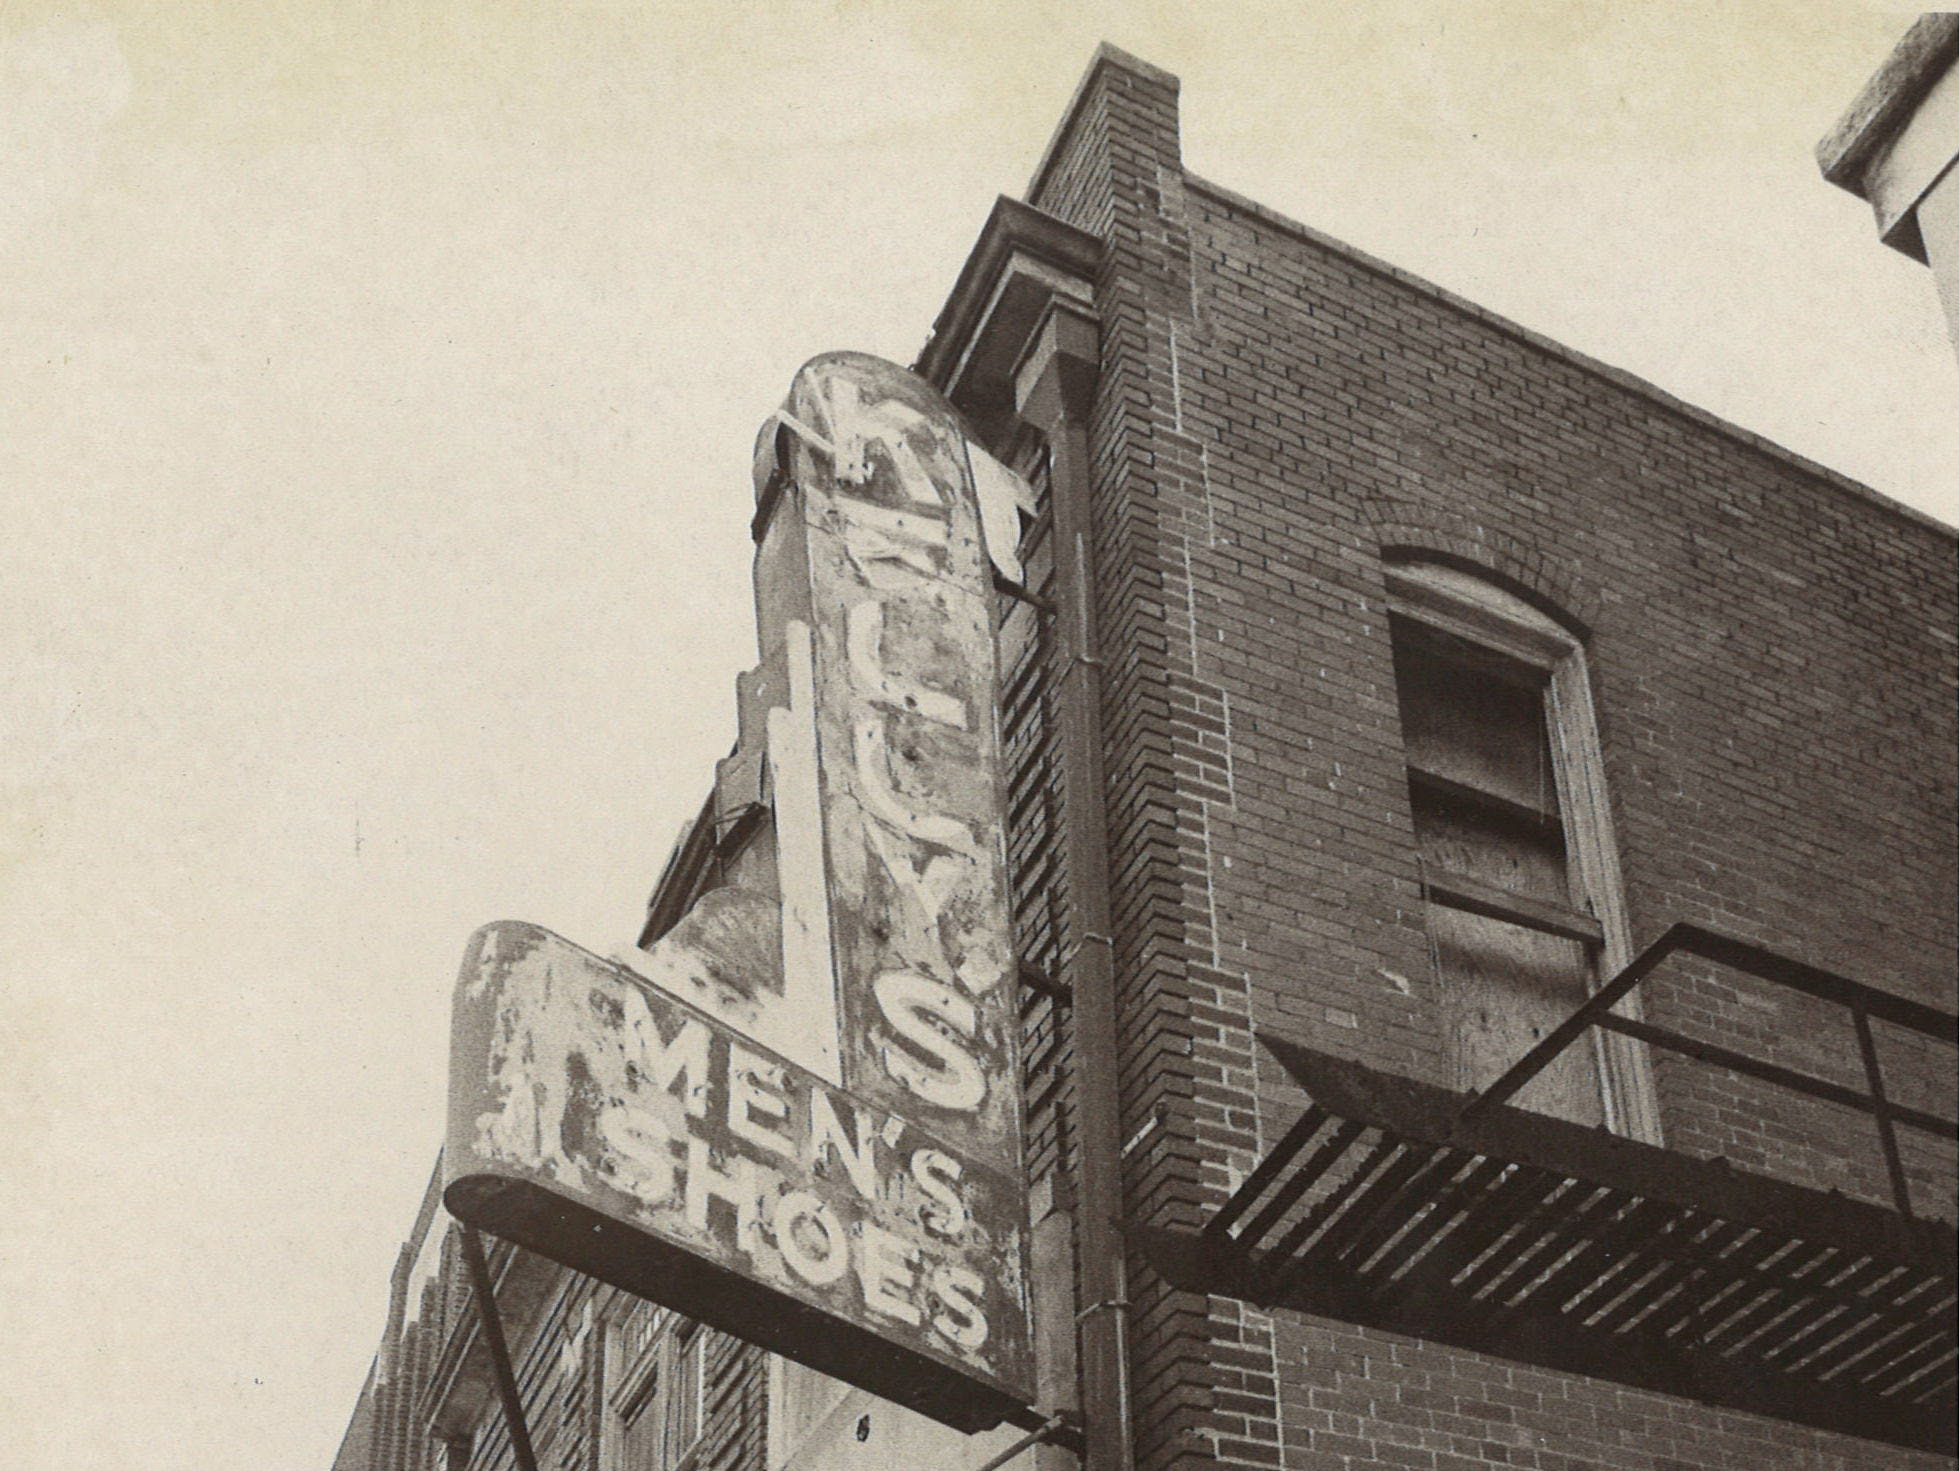 The boarded-up exterior of Kelly's Men's Shoes on Chaparral street in September 1975 in downtown Corpus Christi